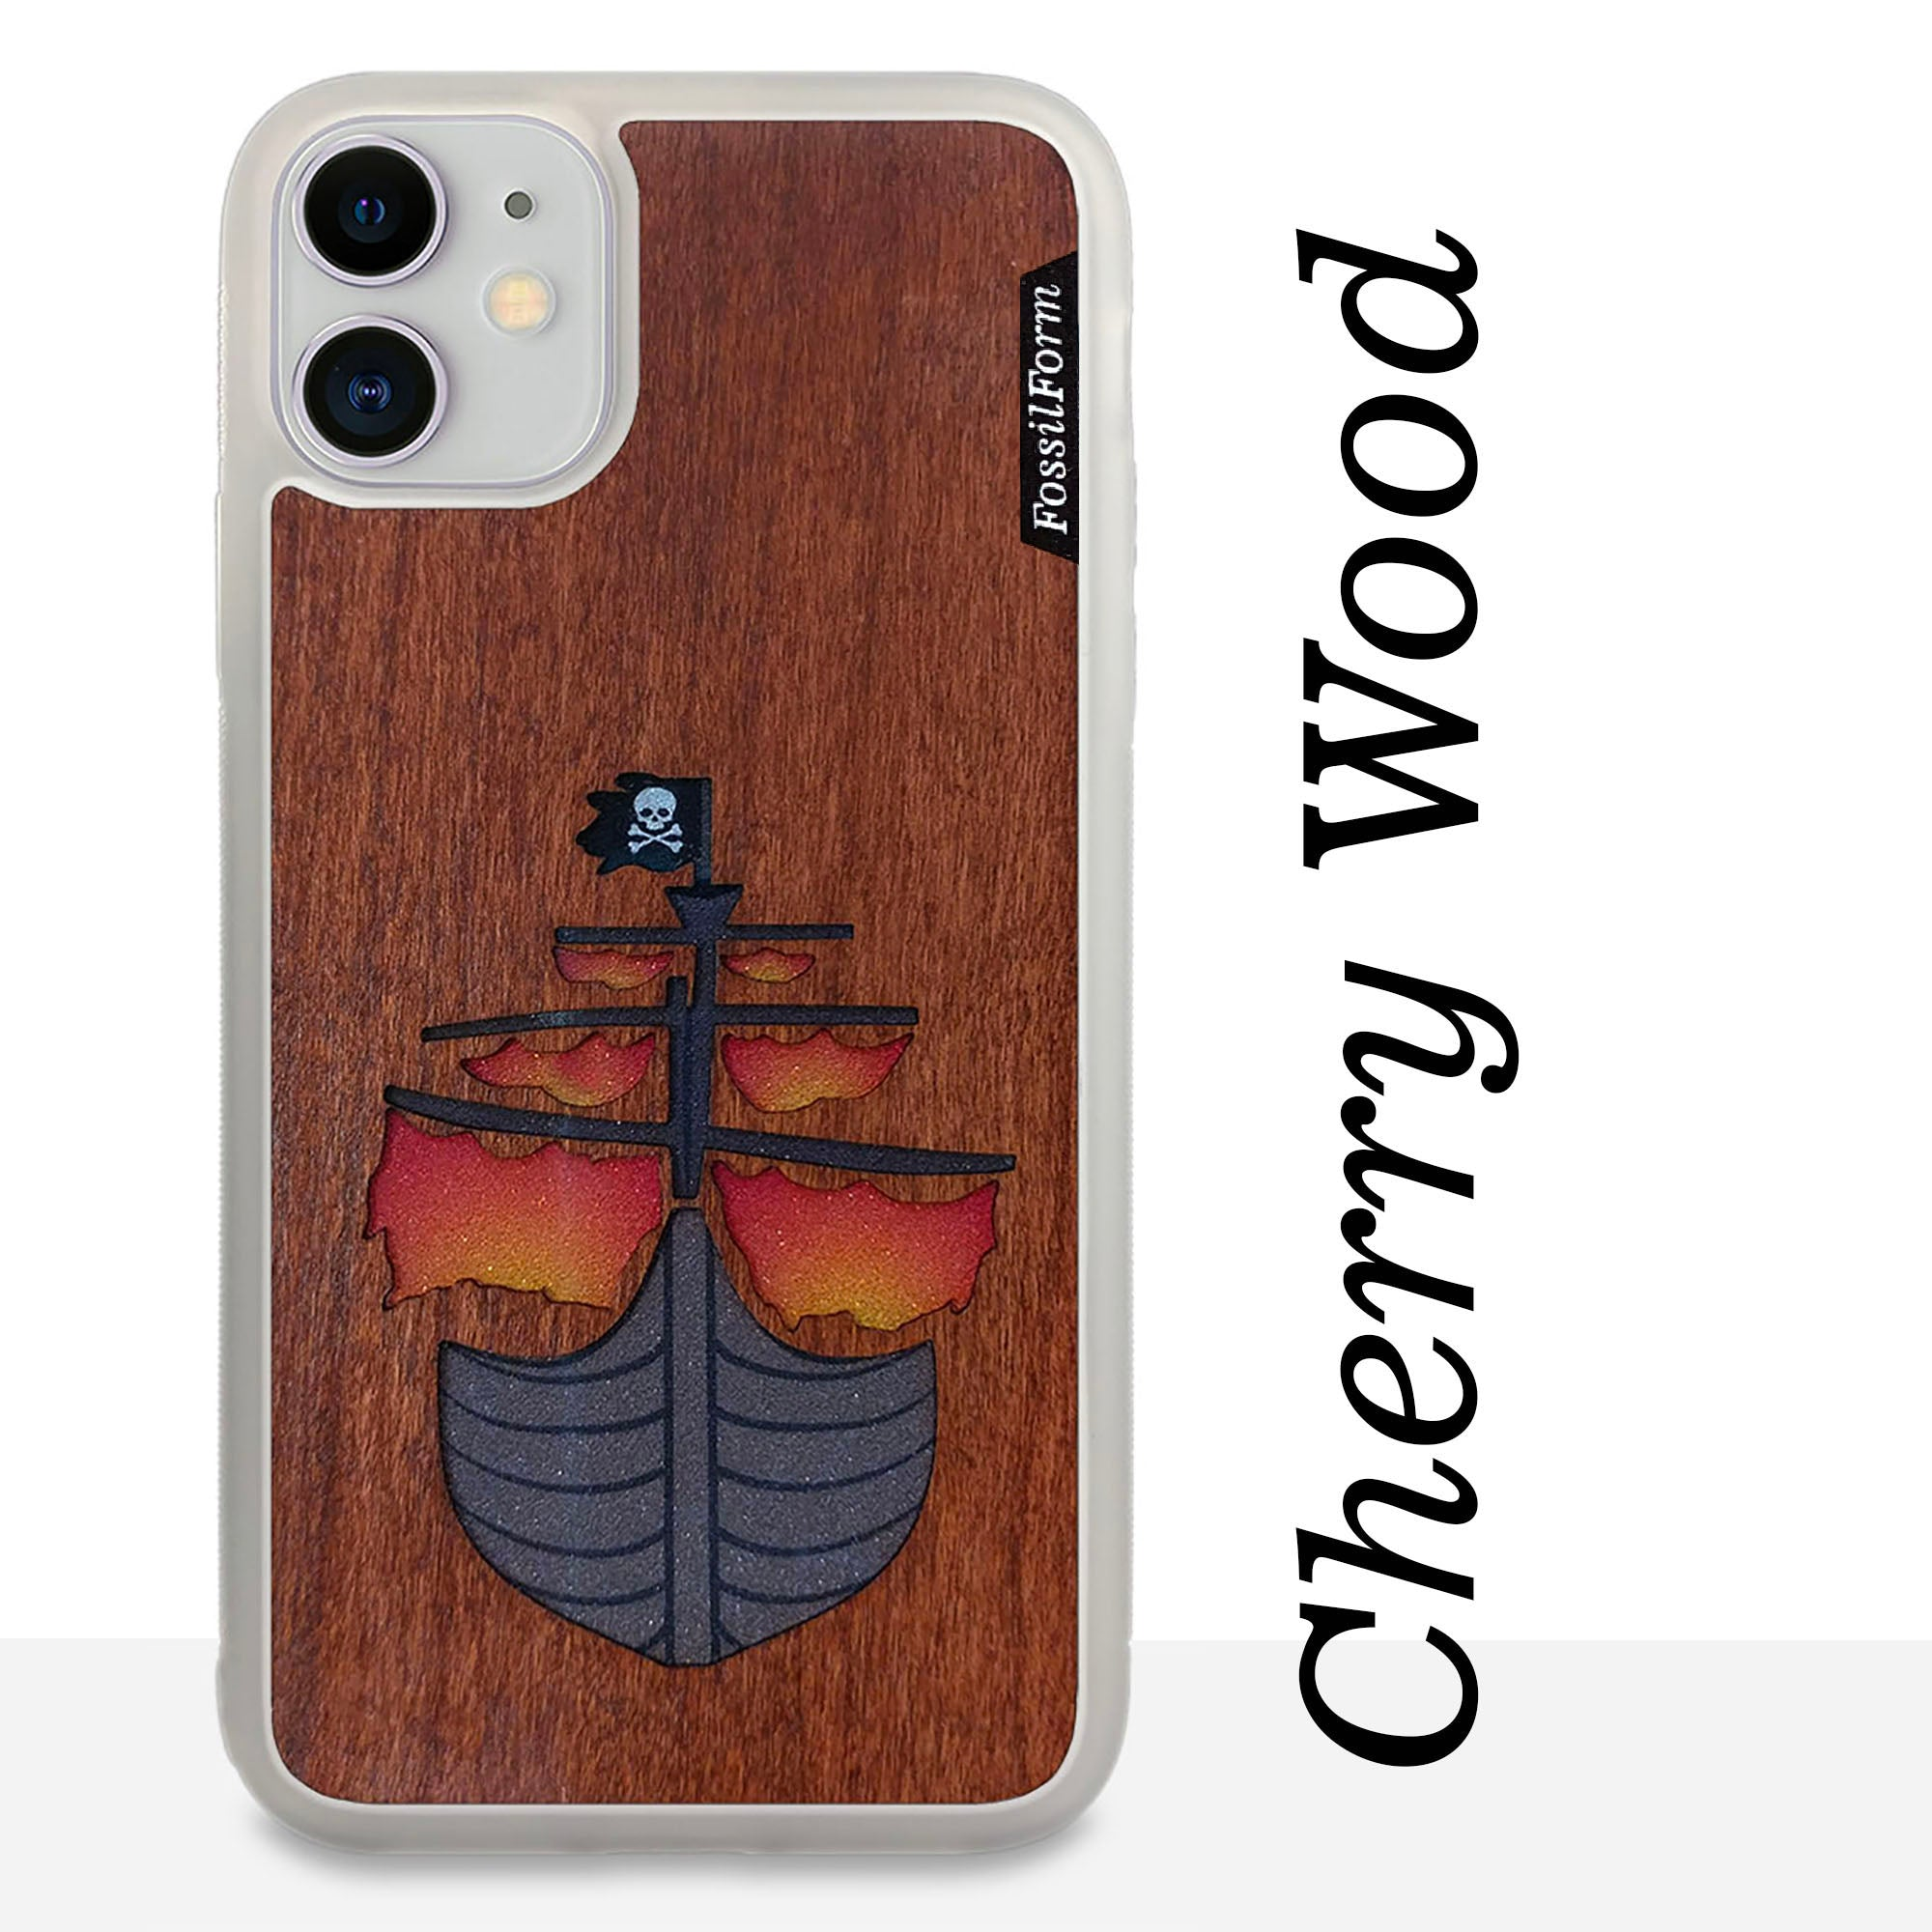 Pirate Ship - Wood & Resin Case - White